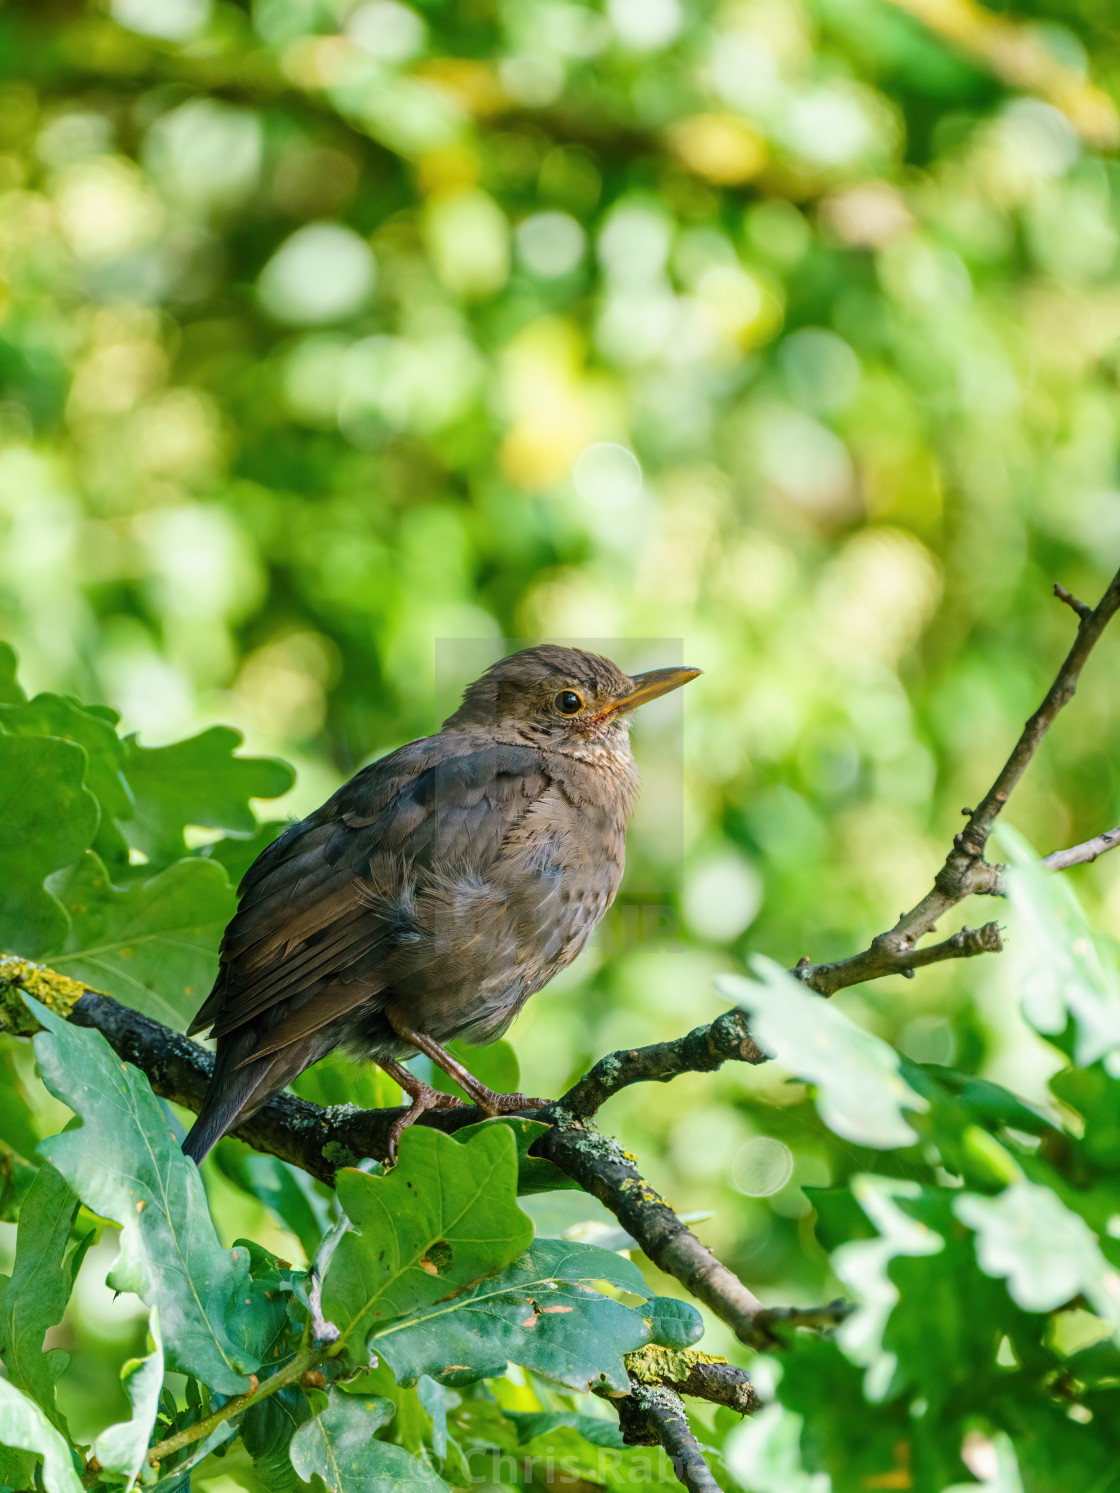 """Blackbird (Turdus merula), taken in the UK"" stock image"